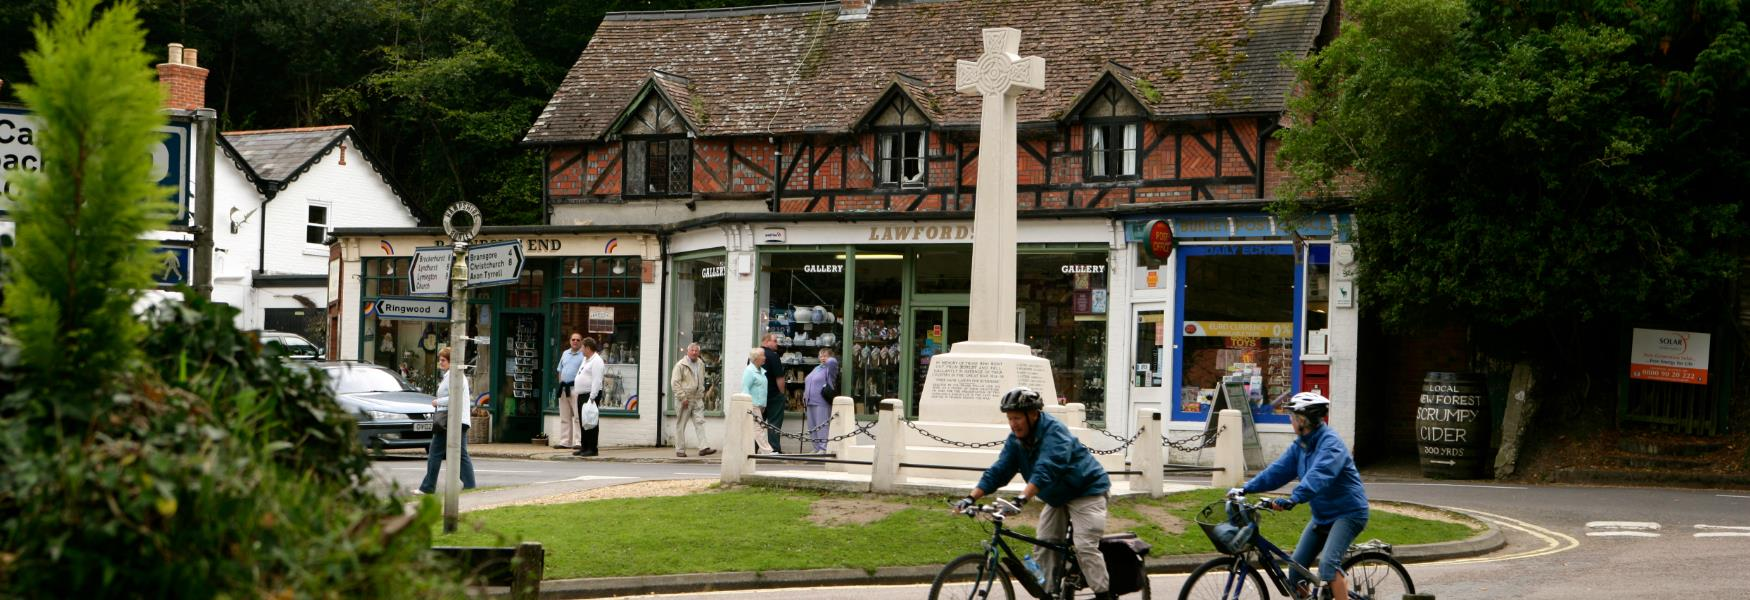 Cycling through Burley Village High Street in the New Forest